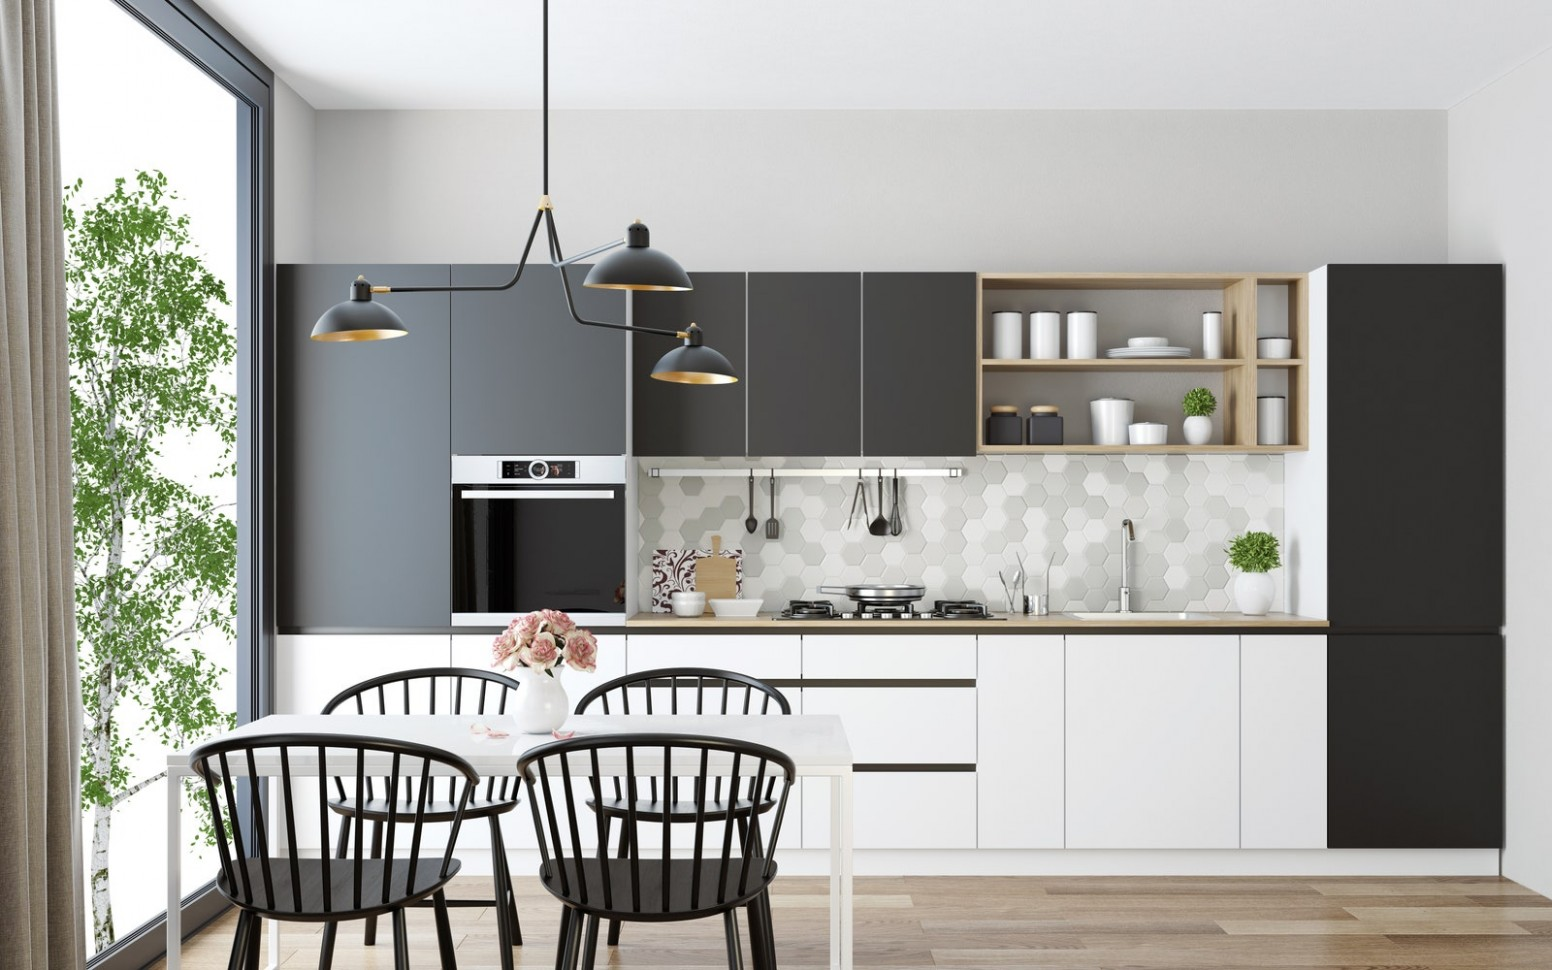 12 Small Kitchen Design Ideas That Make the Most of a Tiny Space  - Small Dining Room Kitchen Ideas